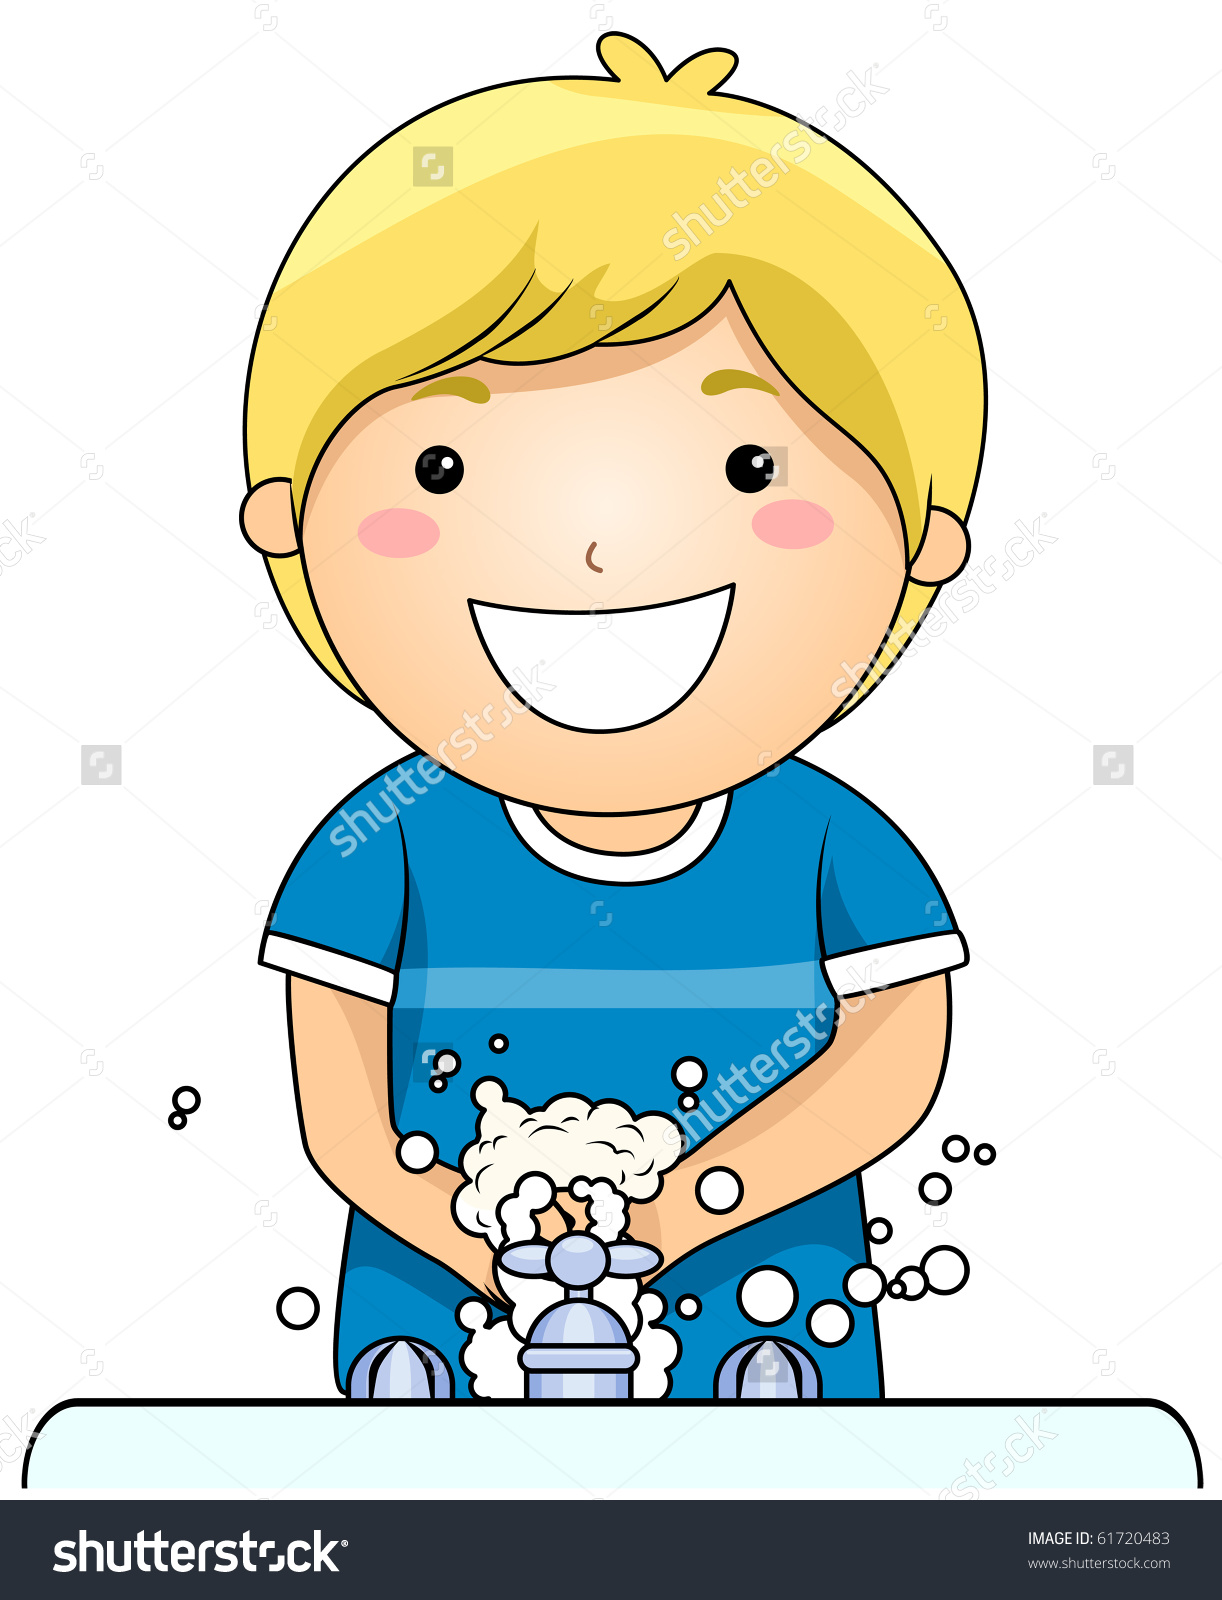 Child washing hands clipart banner free Child washing hands clipart - ClipartFest banner free